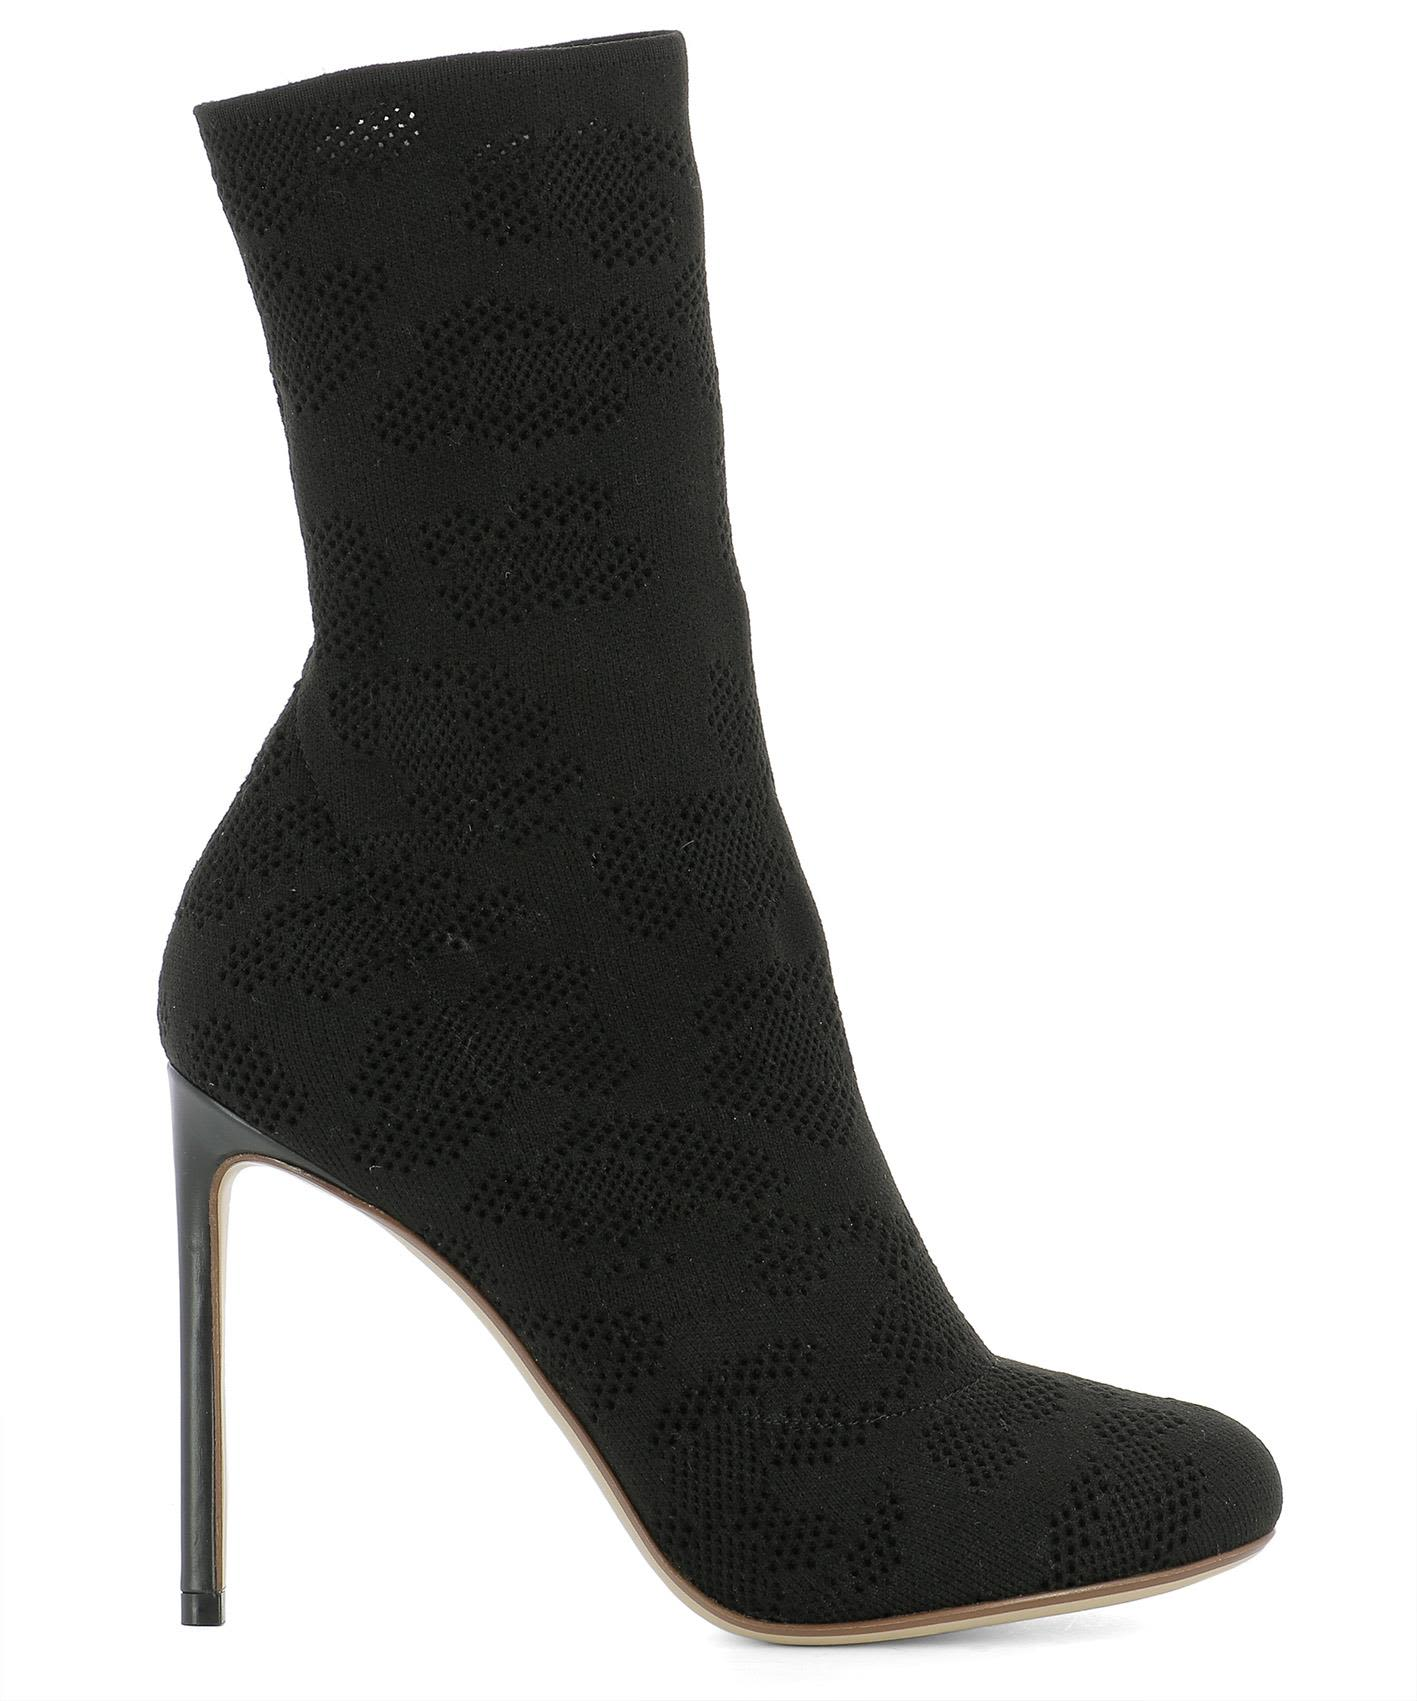 Black Fabric Heeled Ankle Boots